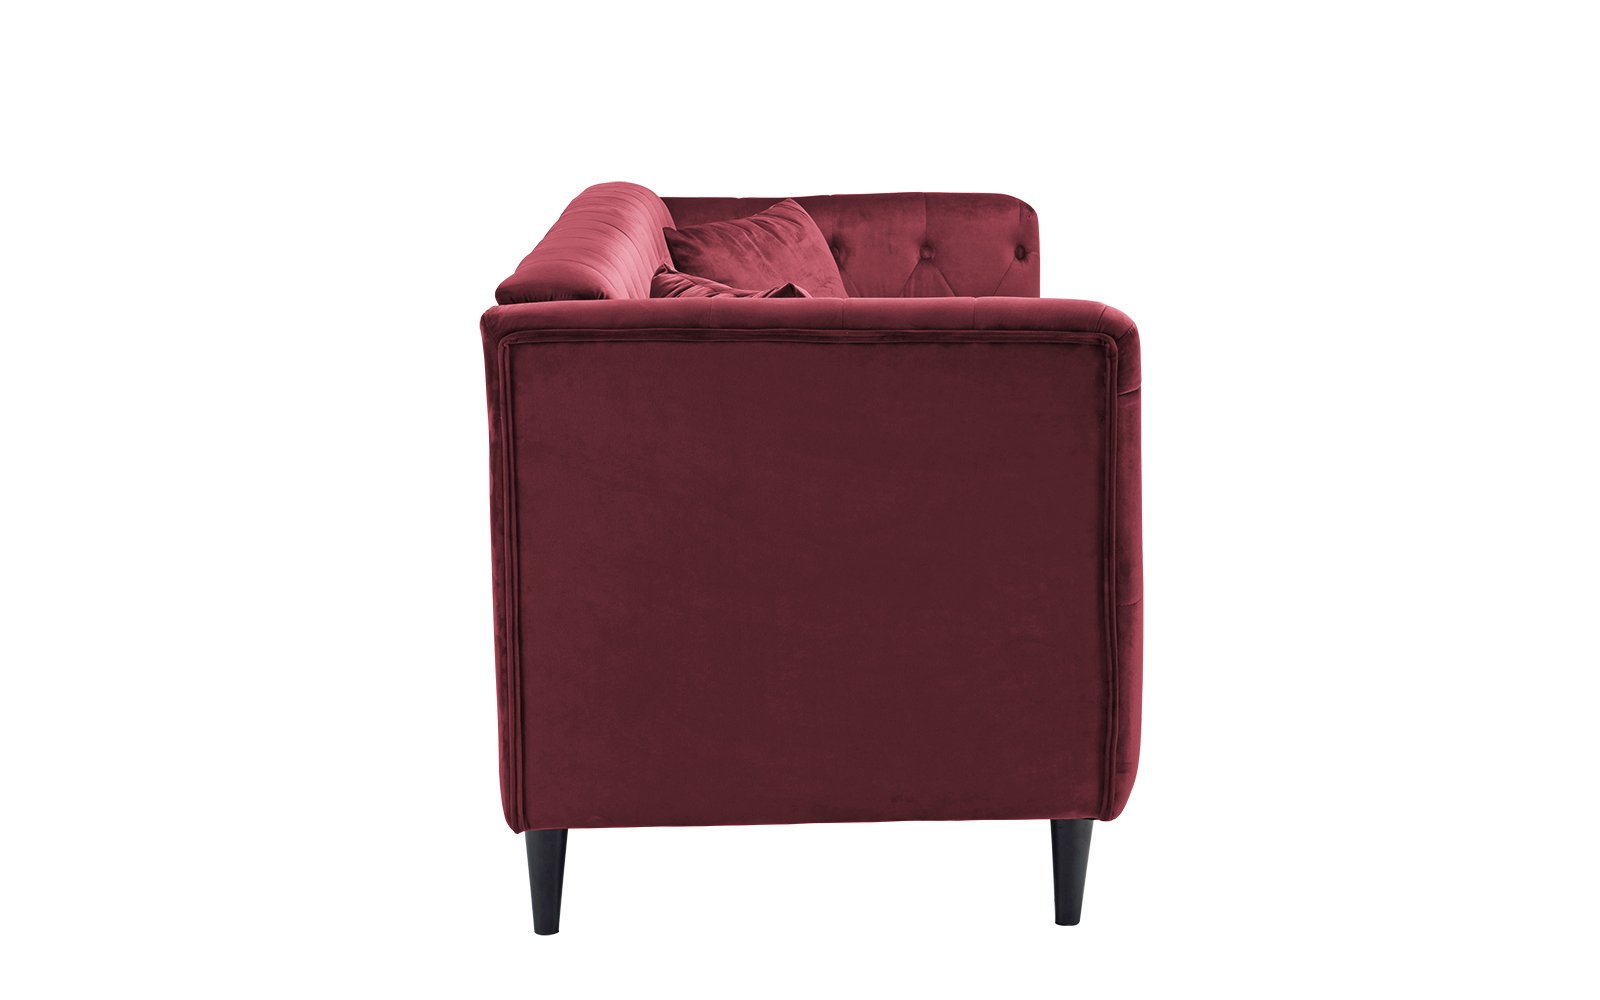 Sofamania Mid-Century Velvet Sofa, Living Room Couch with Tufted Buttons (Red) - Classic tufted sofa with a club style frame, button details and includes 2 decorative pillows in the same fabric. Upholstered in soft hand chosen velvet fabric on a hardwood frame with dark wooden Mid-century style legs. Seat and back cushions are filled with high density foam to provide plush yet firm comfort for long lasting use. - sofas-couches, living-room-furniture, living-room - 51OrABCpzTL -